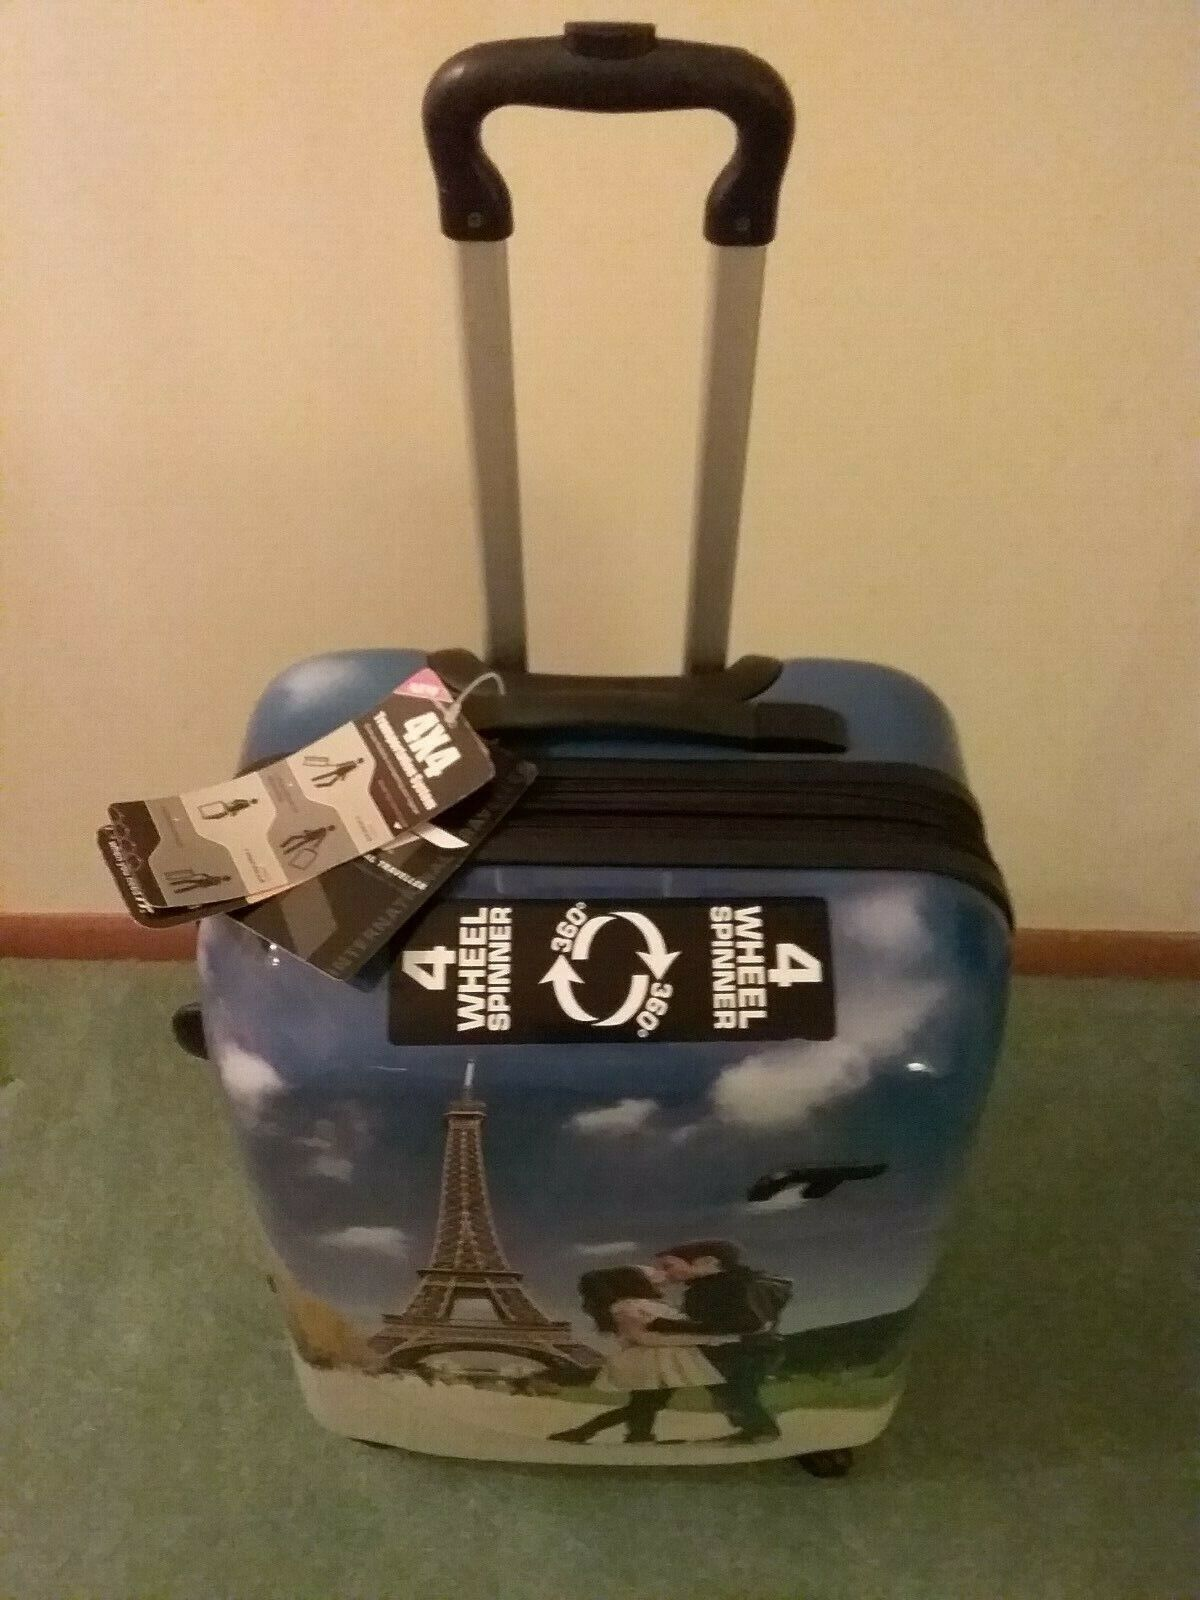 Paris Themed Suitcase, Never Used, Still Has Tags - Brand New - $35.00